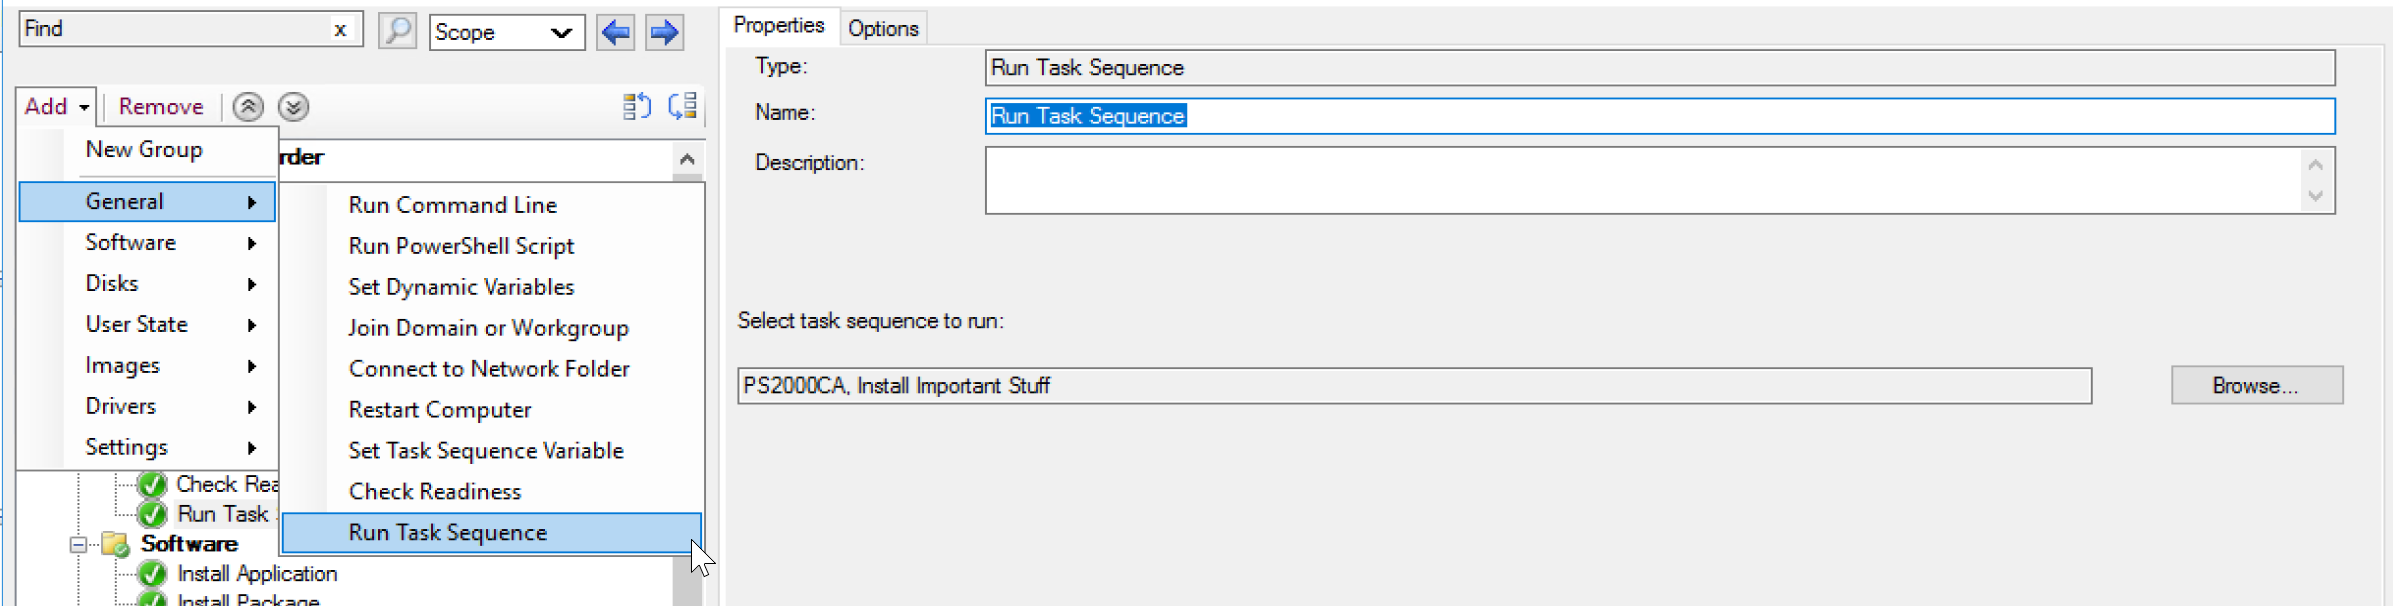 Run Task Sequence Image 1